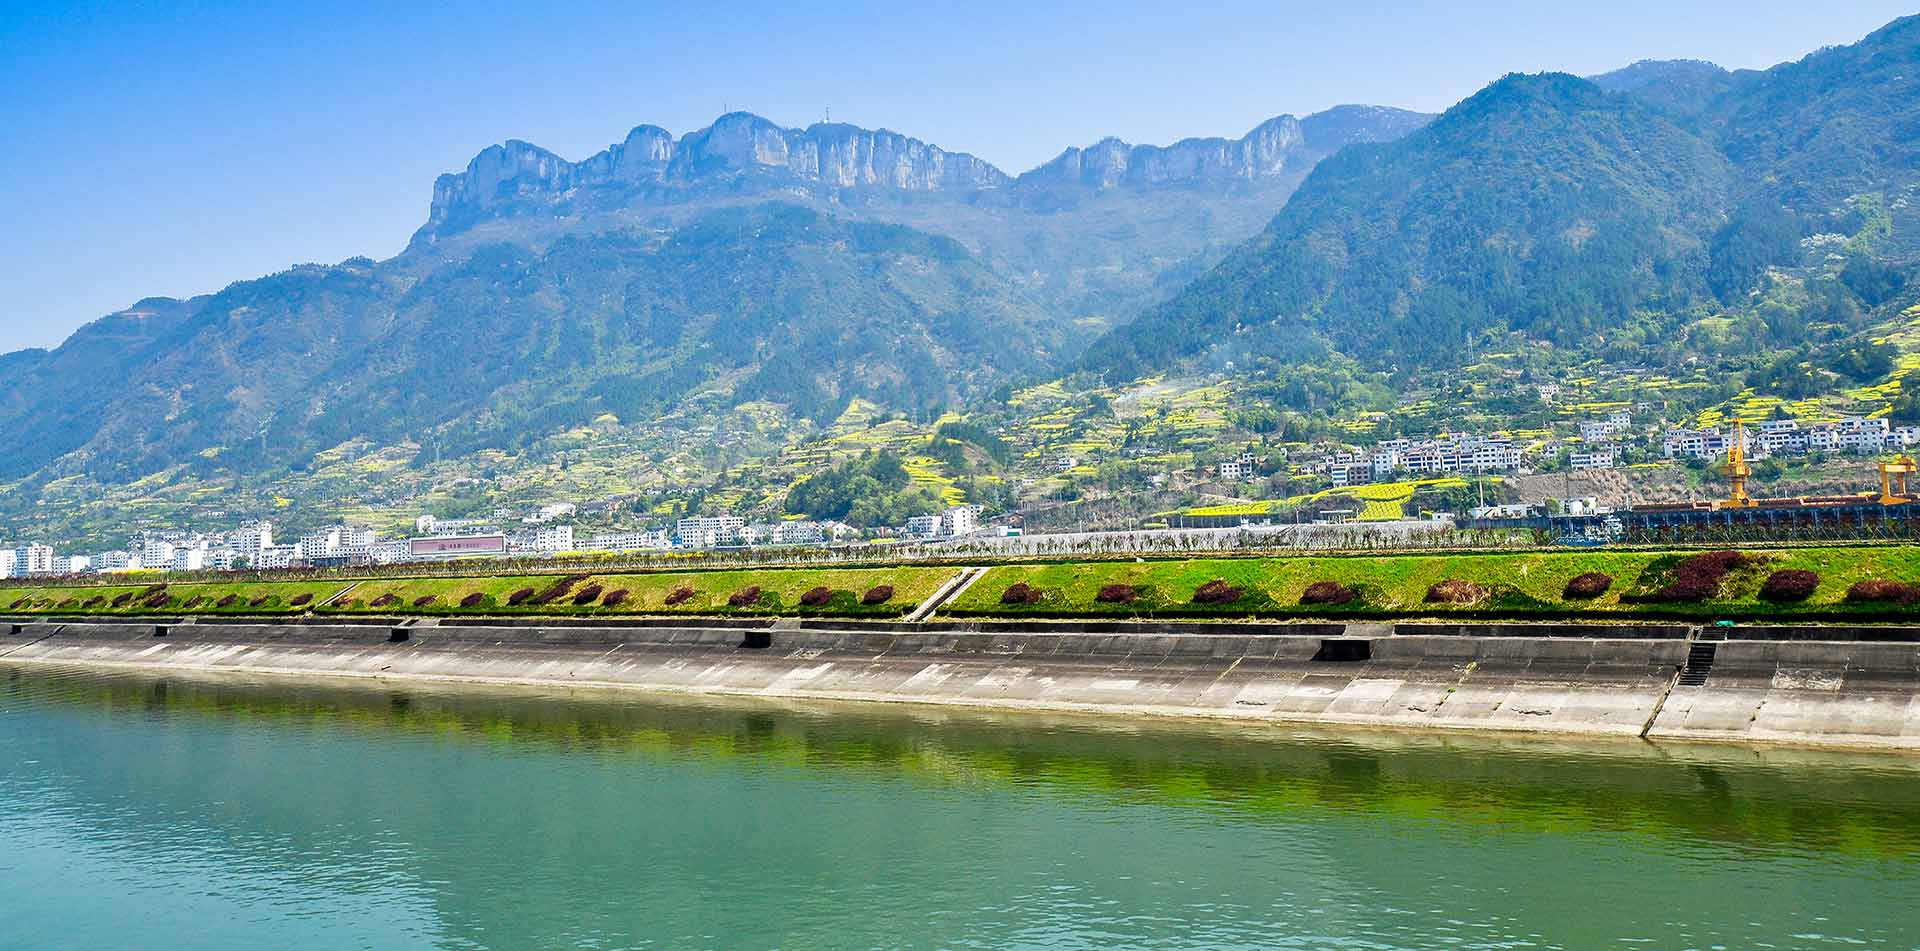 Asia China shoreline along the Yangtze River with village and mountains - luxury vacation destinations